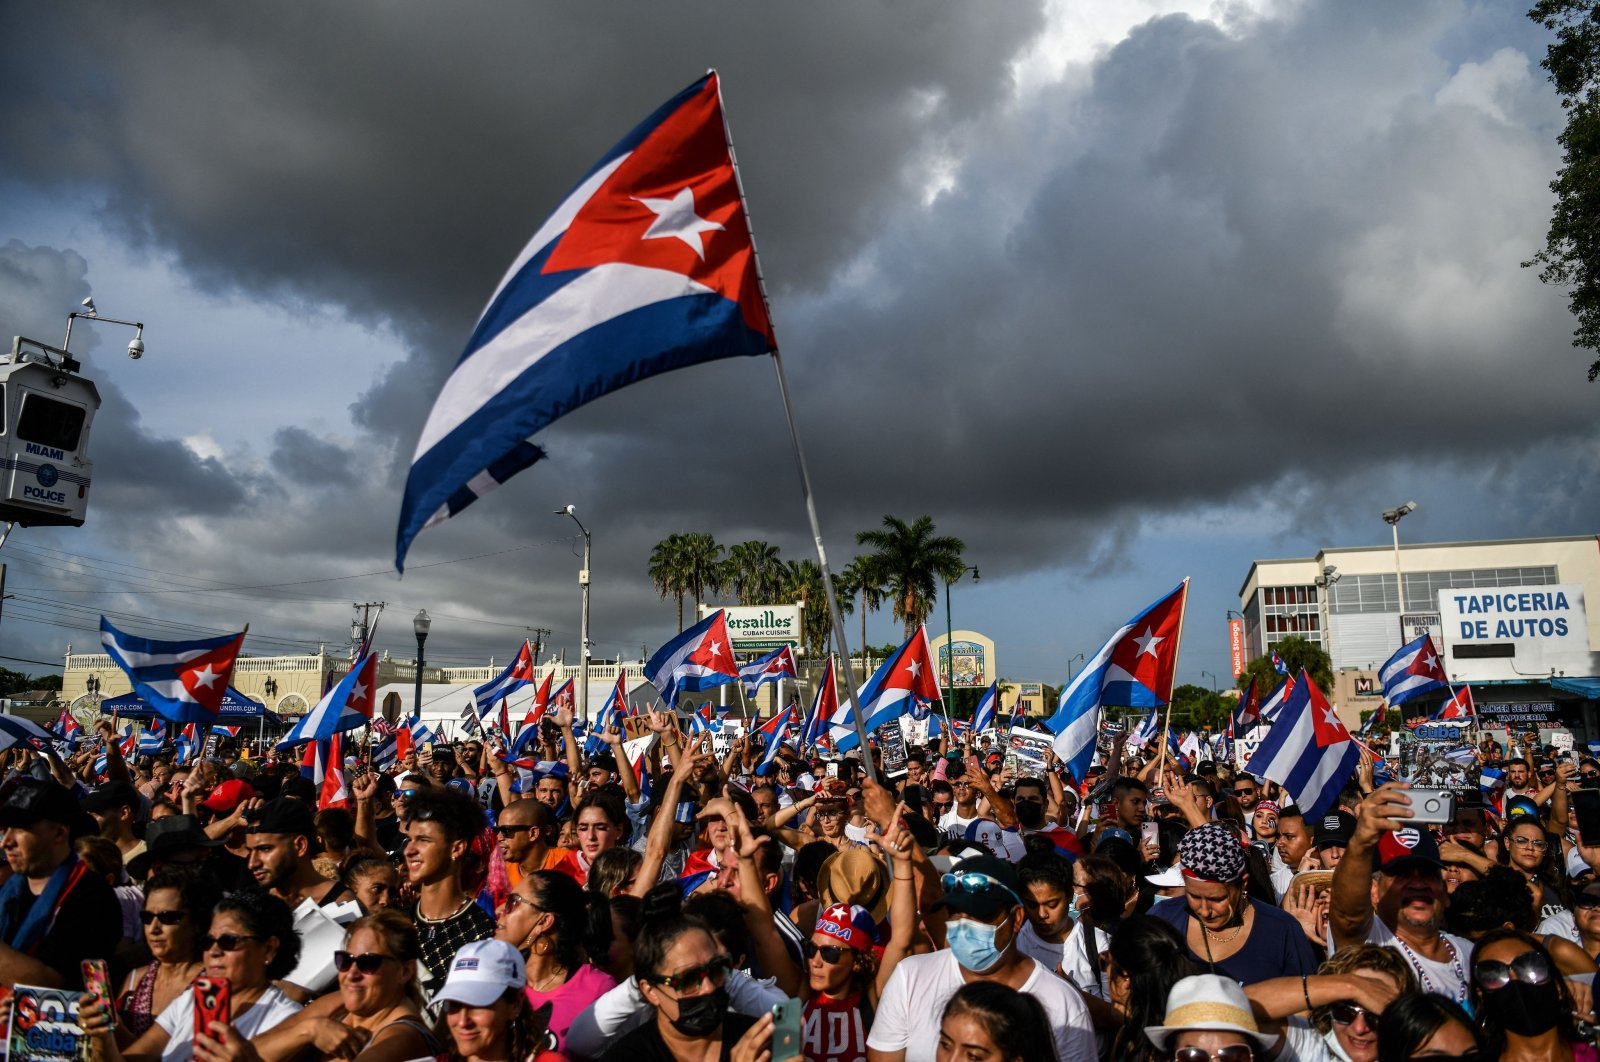 People protest to show support for Cubans demonstrating against their government, in Miami, Florida, U.S., July 14, 2021. (AFP Photo)